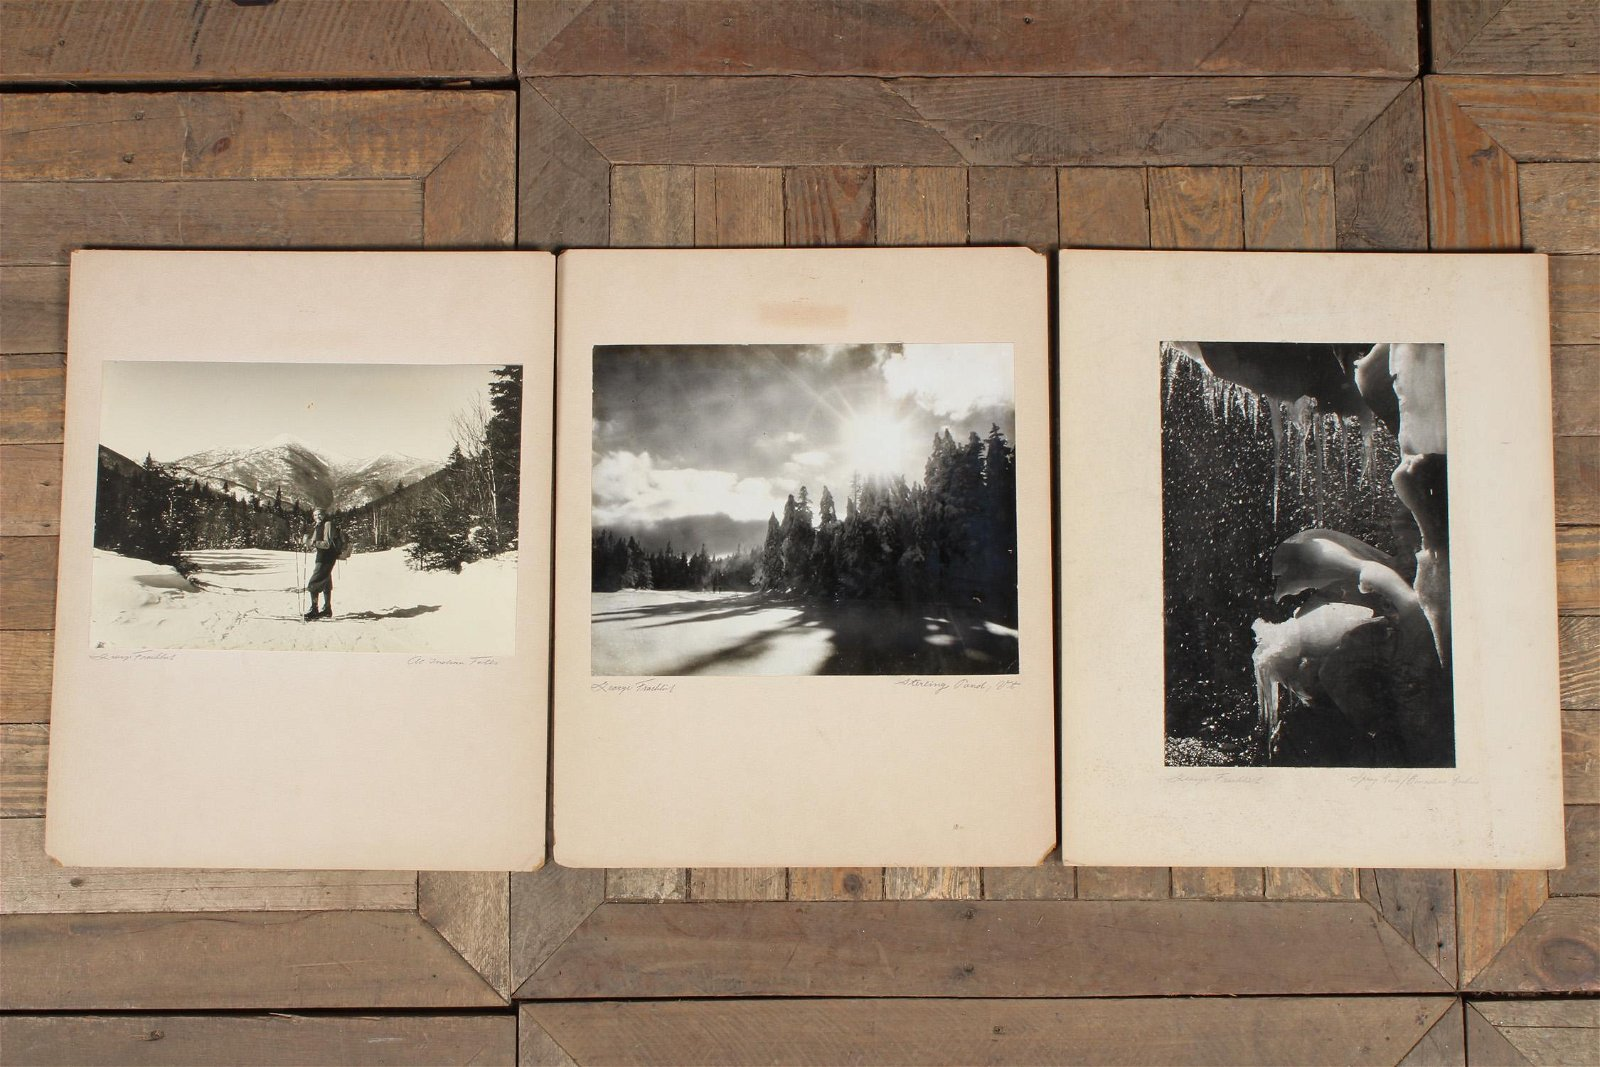 3 Photographs by George Fredrick (?)